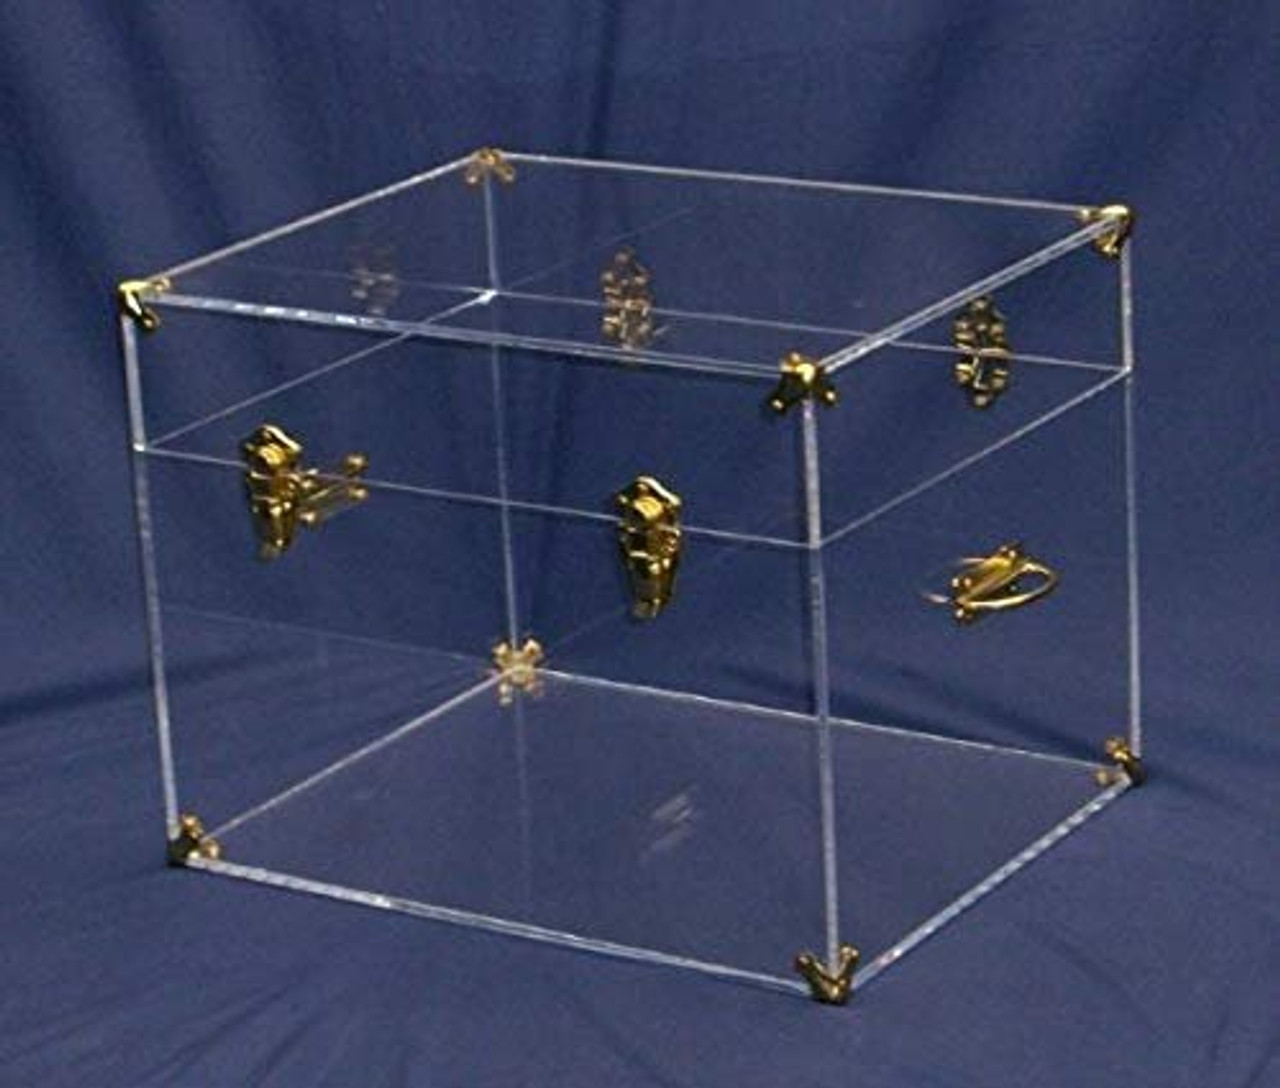 Flat-Top Acrylic Chest, Silver Hardware, 20 inches Wide x 16 inches deep x 15.5 high